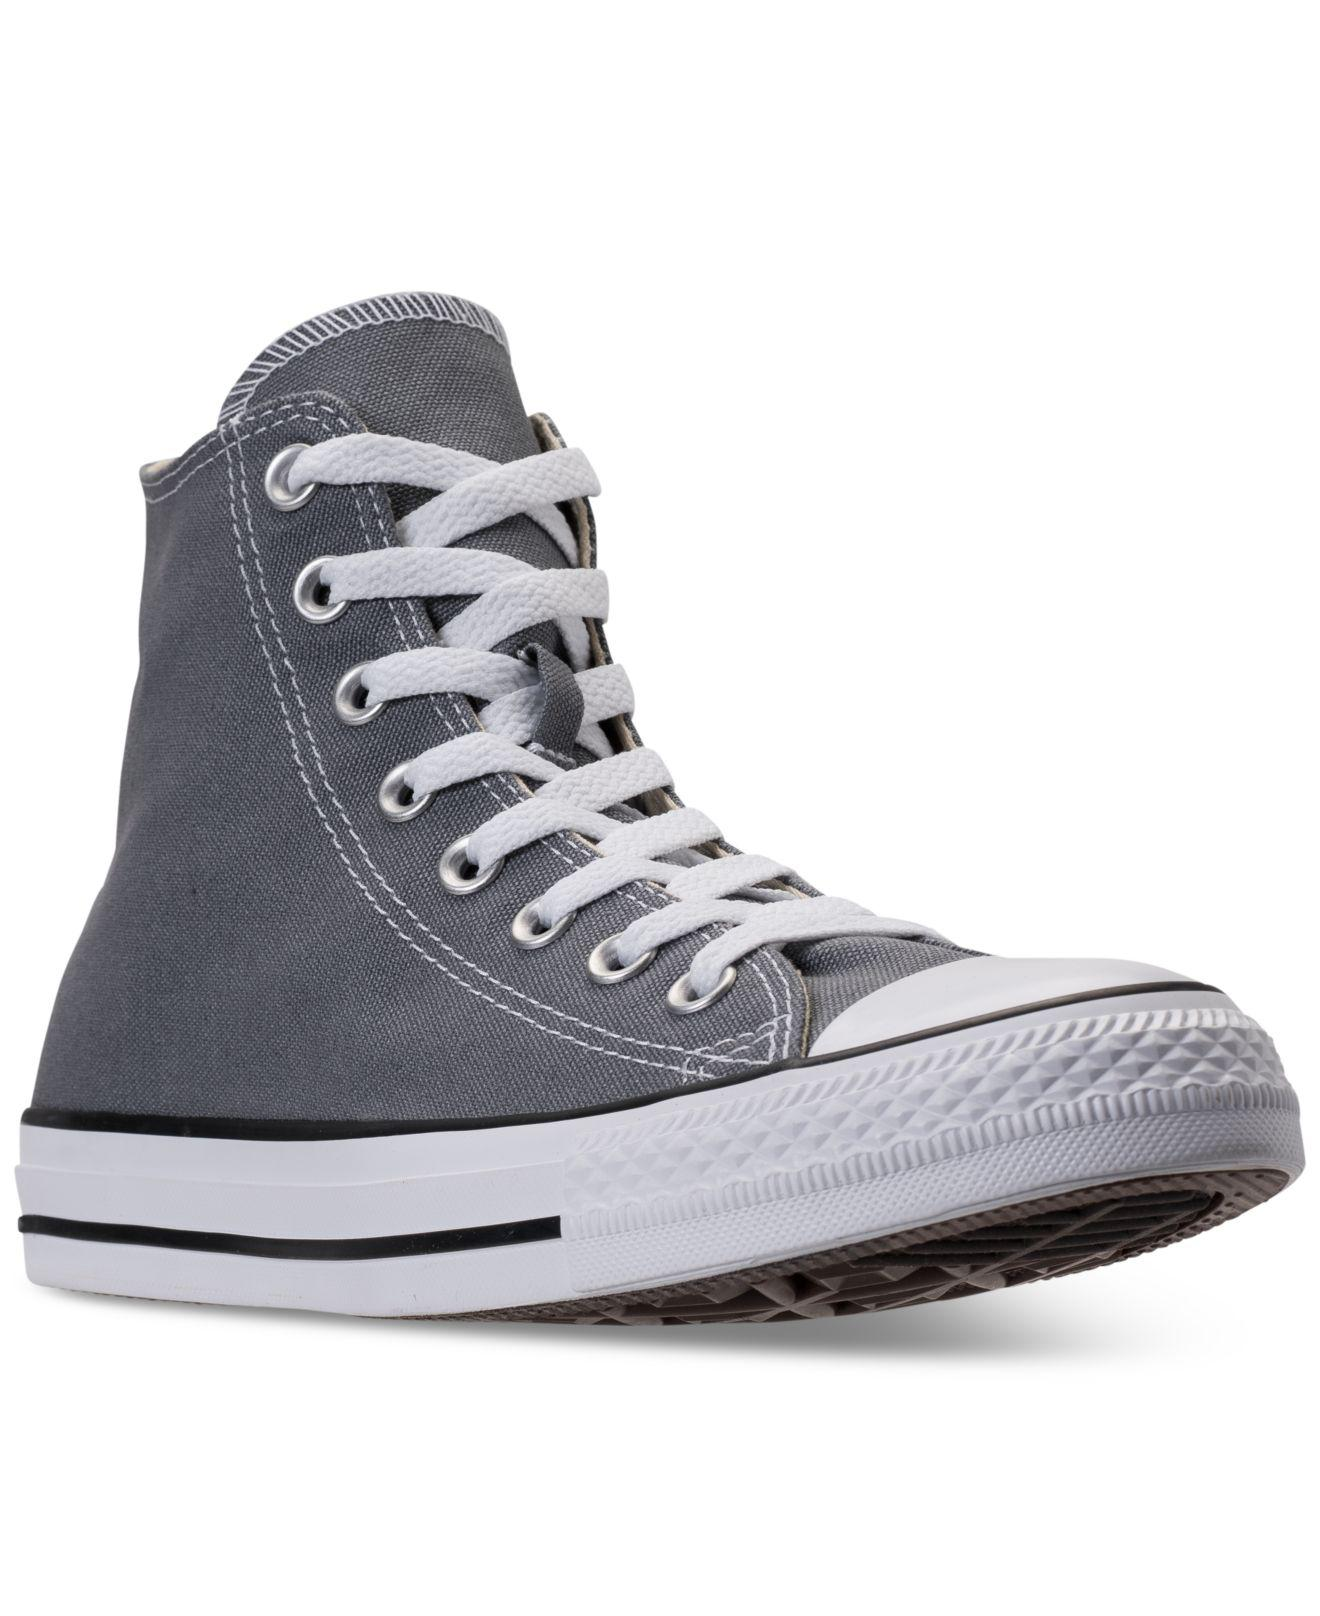 81492ce057dd Lyst - Converse Men s Chuck Taylor Ox Casual Sneakers From Finish ...